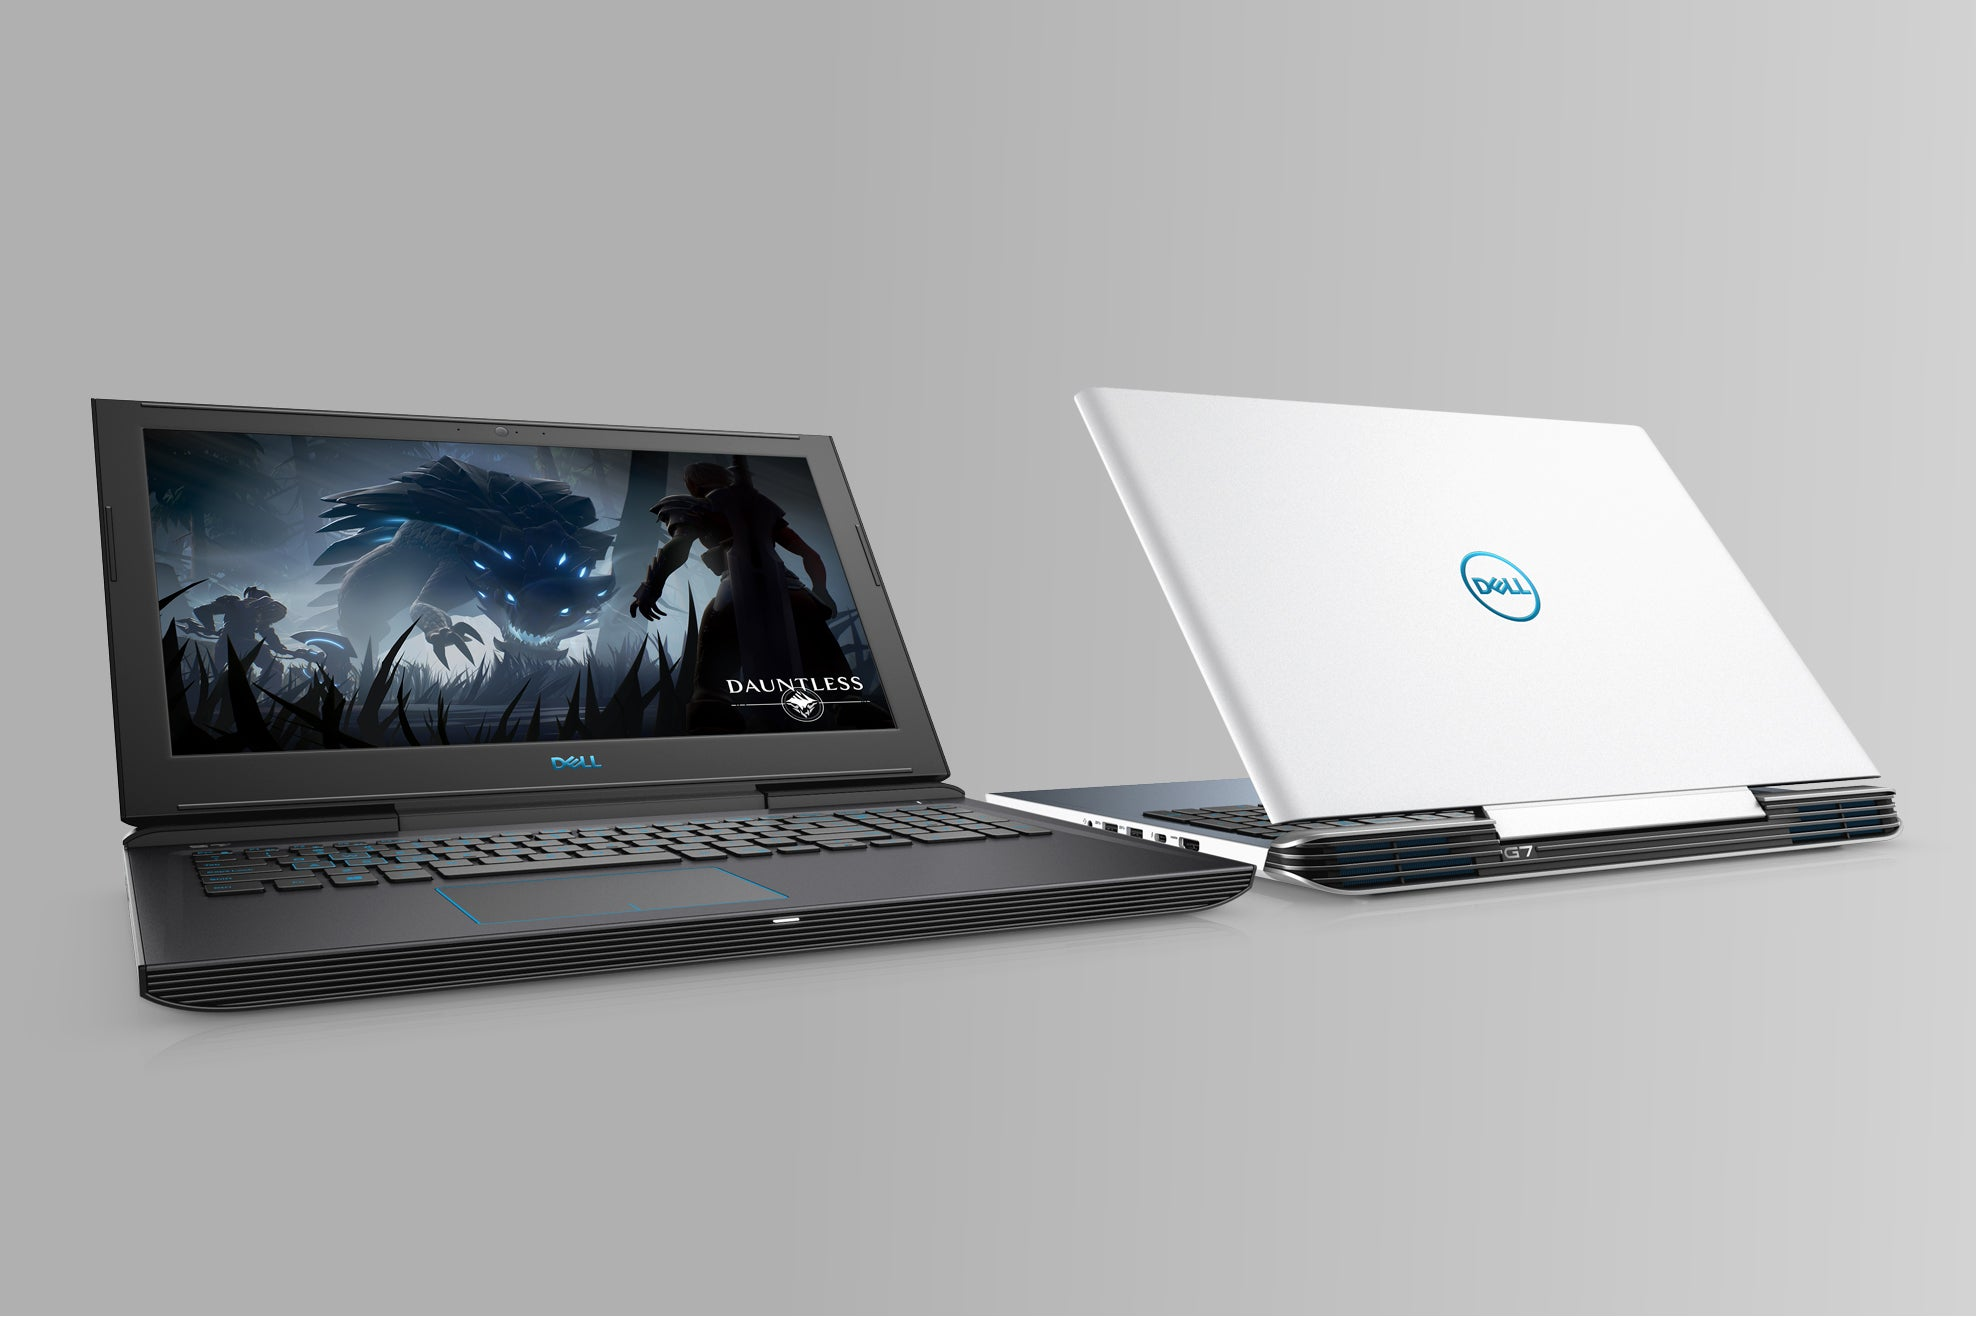 Dell S Latest G Series Gaming Laptops Marry Affordability